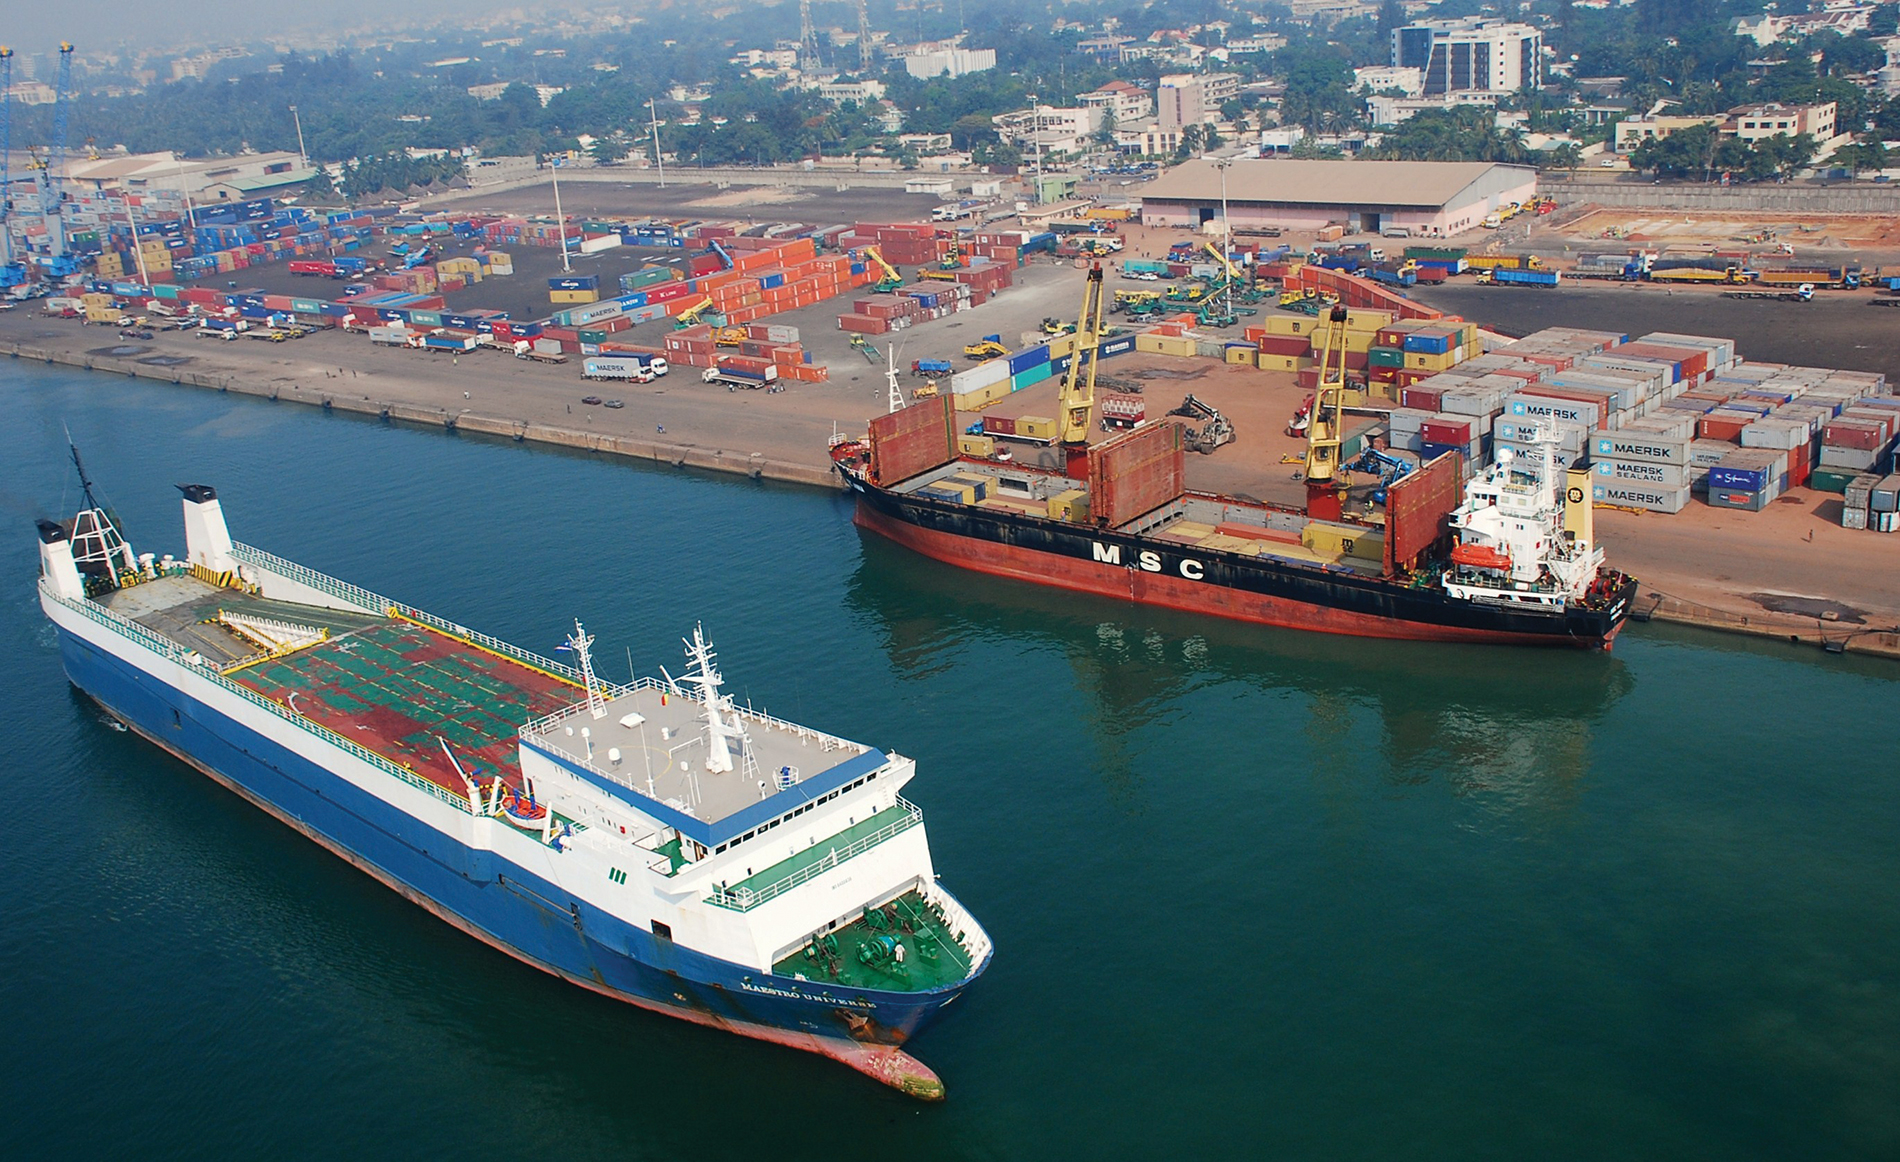 Photo of Benin's Port of Cotonou—modernized as part of MCC's 2006 Benin Compact—is a pillar of Benin's economic growth and serves as a gateway to international trade for the landlocked West African countries of Burkina Faso, Mali and Niger as well as a central pathway for international trade with Nigeria. MCC's $188 million investment in Benin aimed to expand port capacity, improve port security, and increase port efficiency.